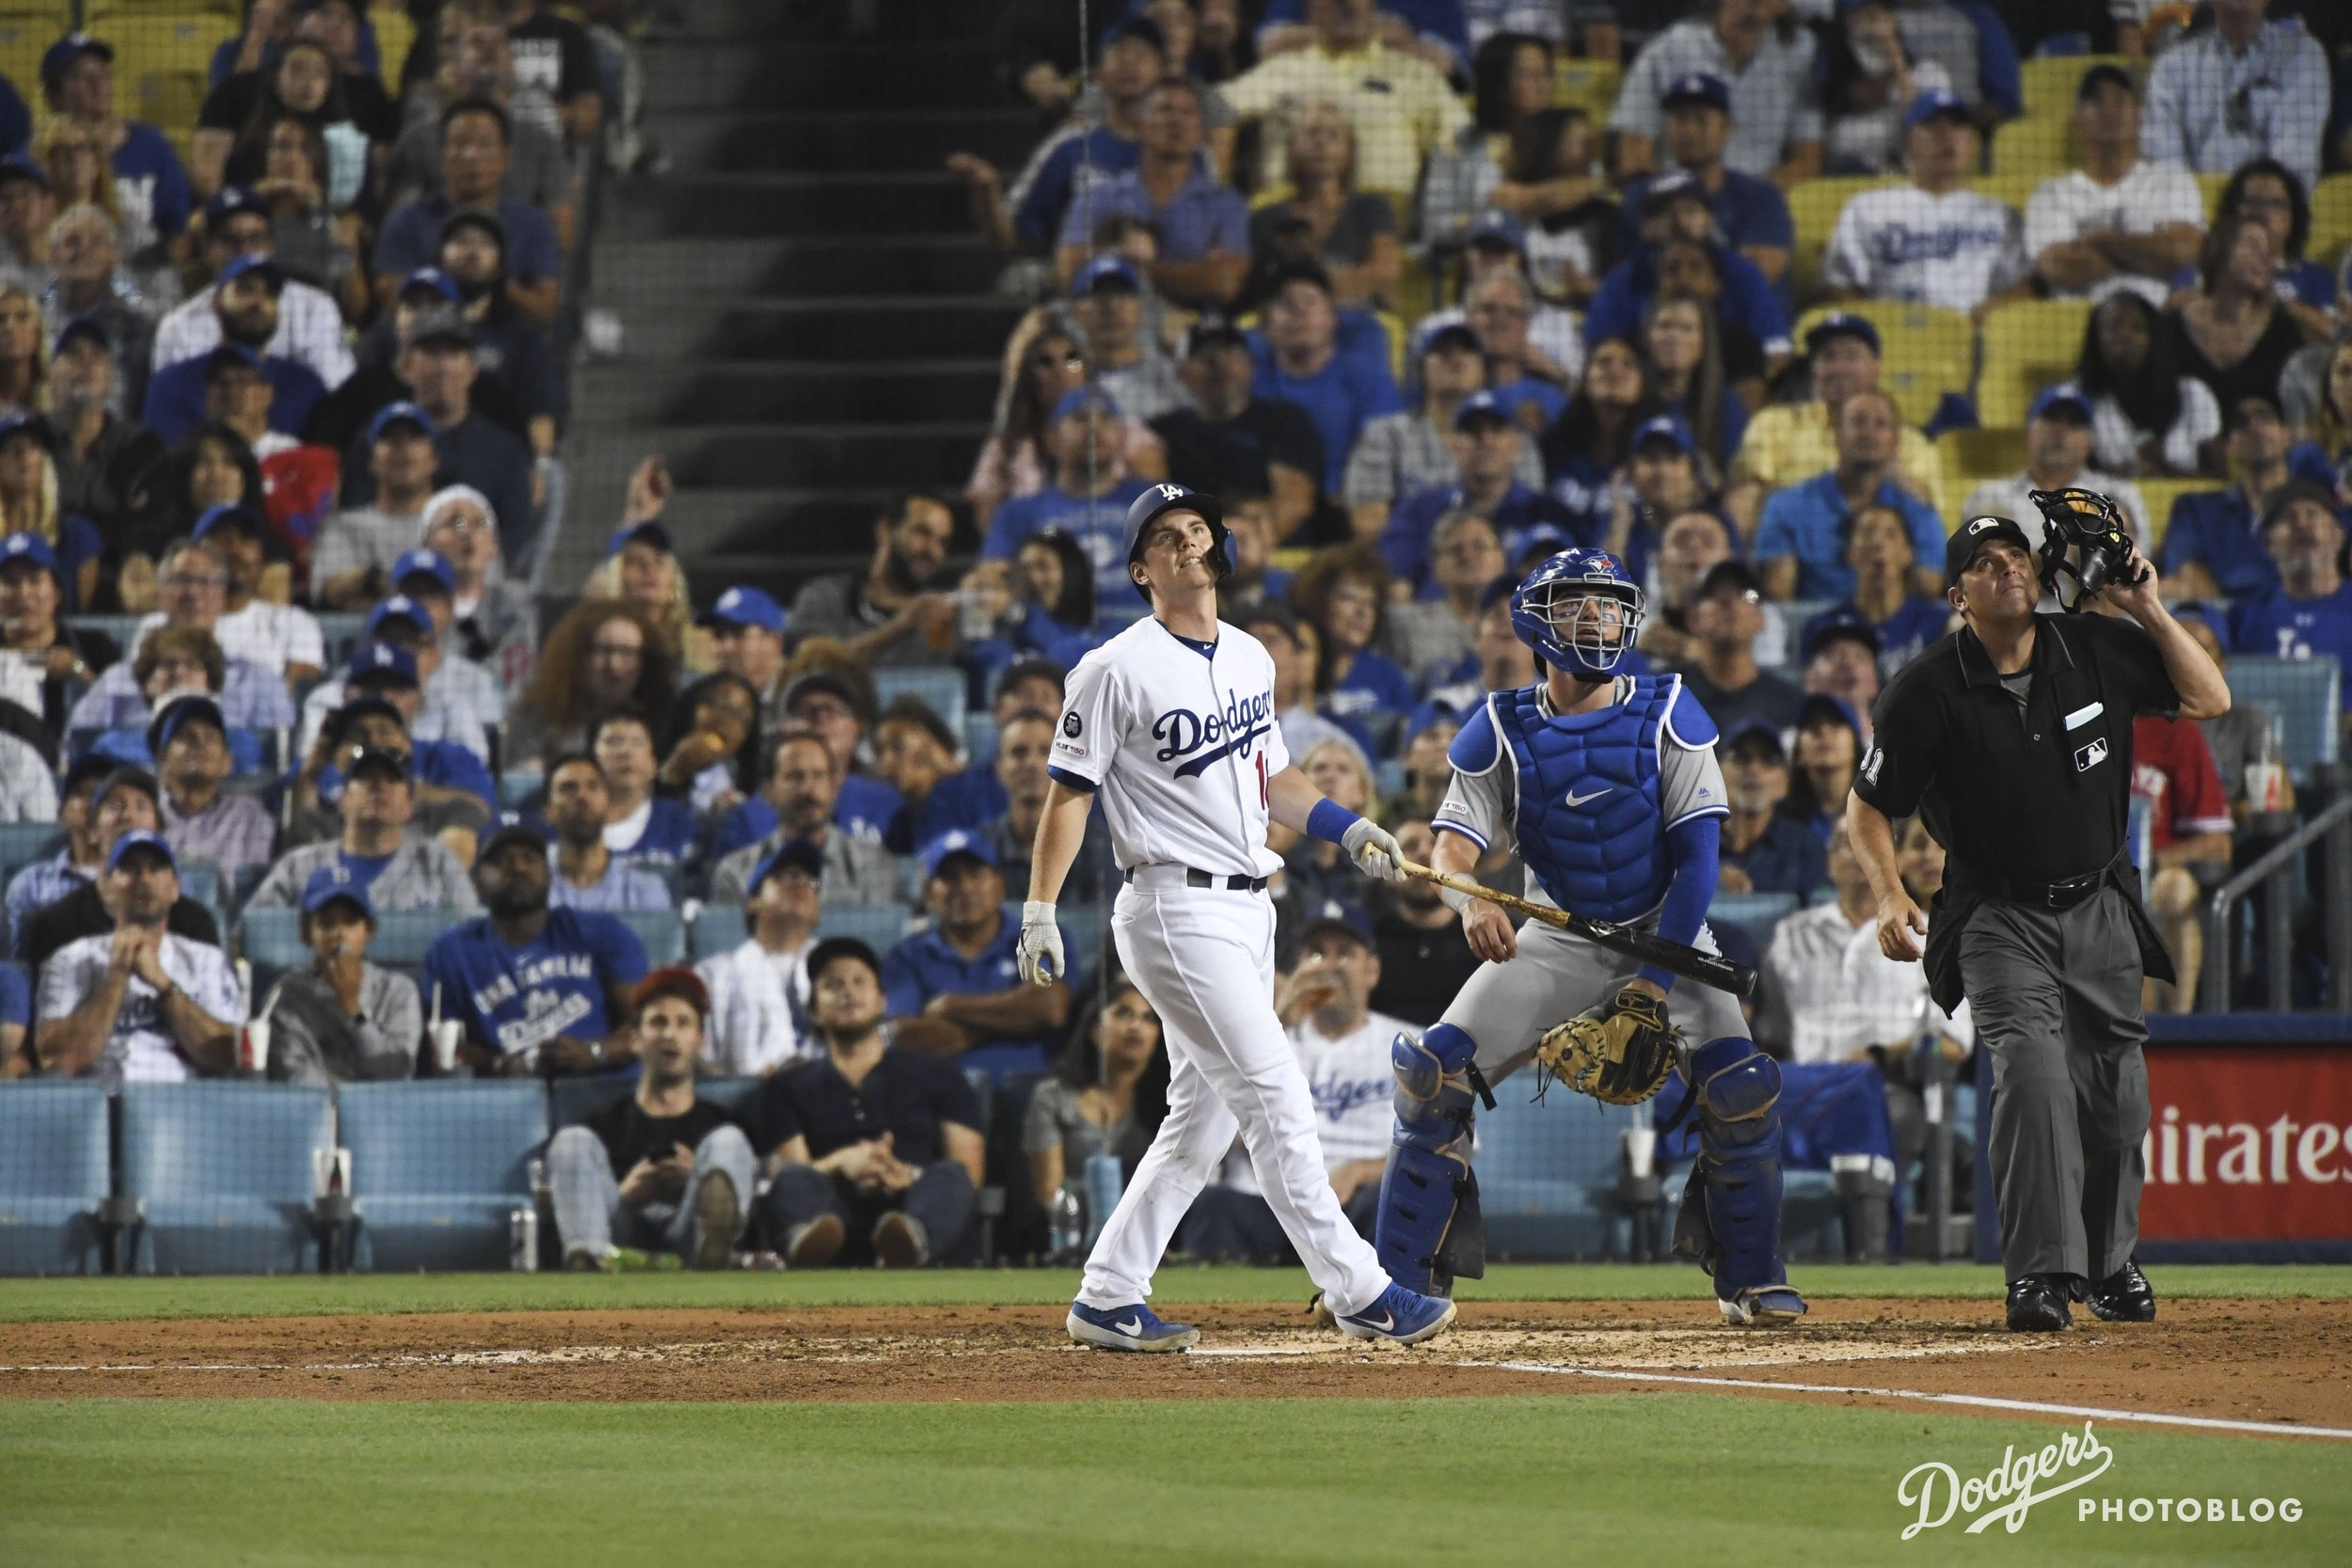 Will Smith admiring his home run. Jon SooHoo/Los Angeles Dodgers